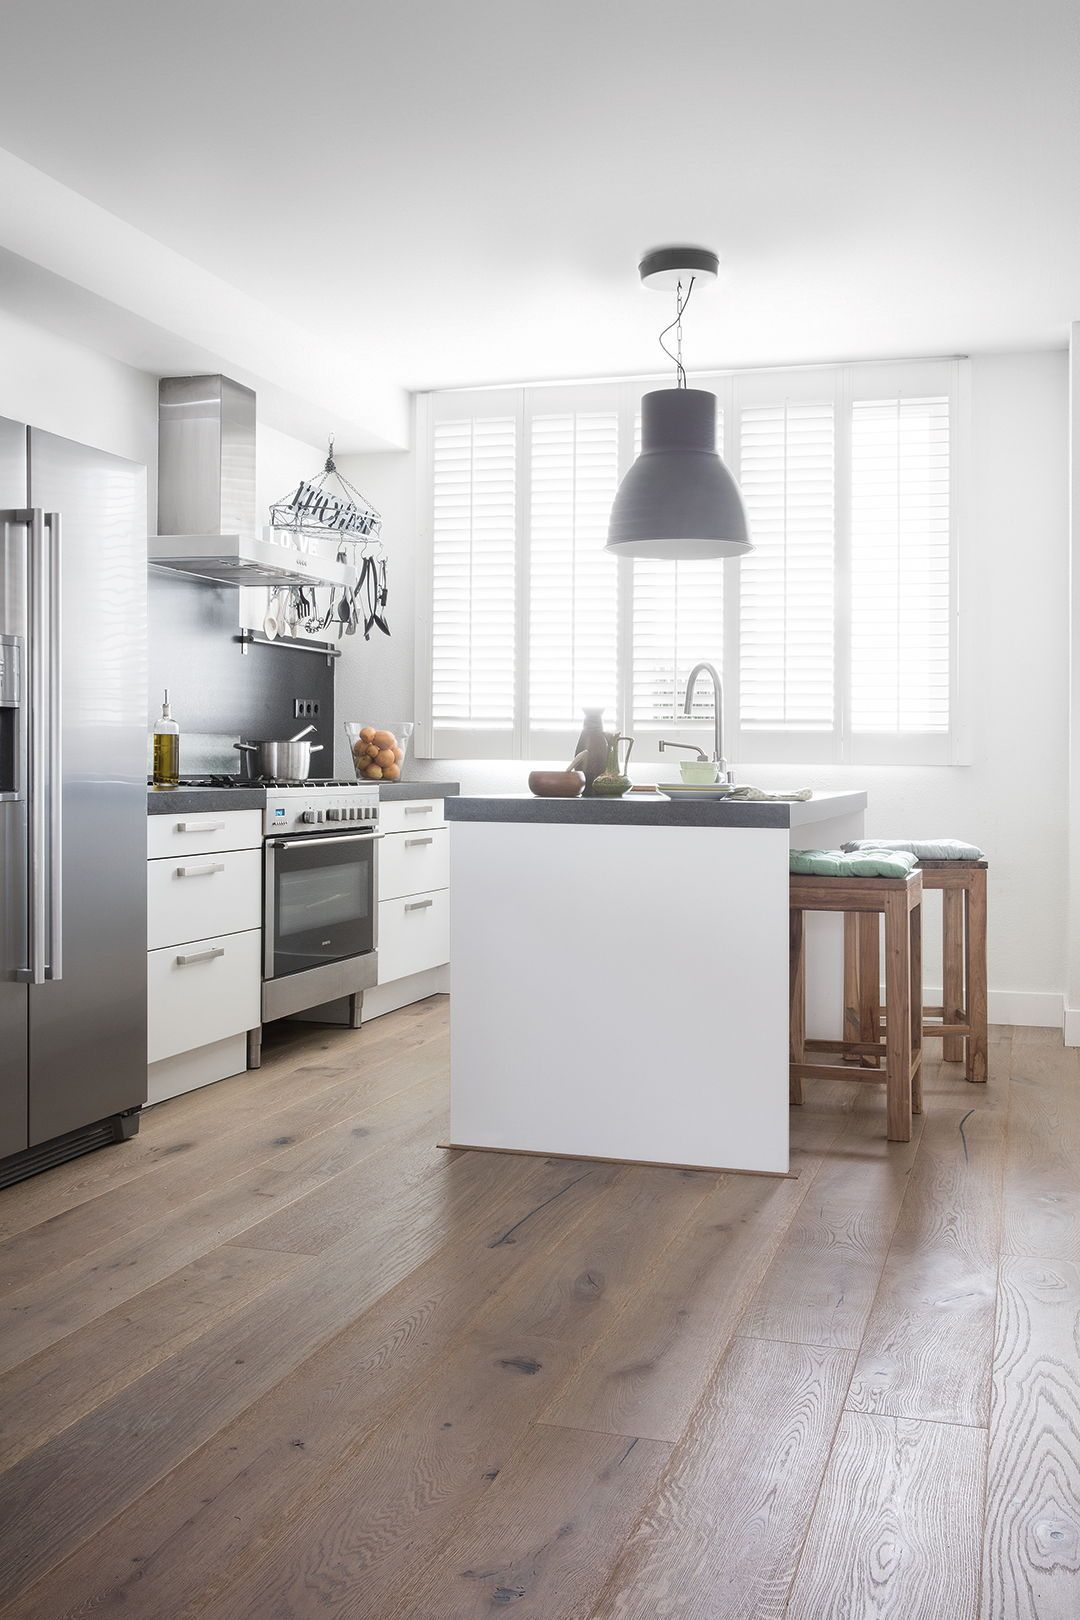 kitchen flooring ideas discover top quality as well as stylish kitchen area floor covering on kitchen flooring ideas id=34268